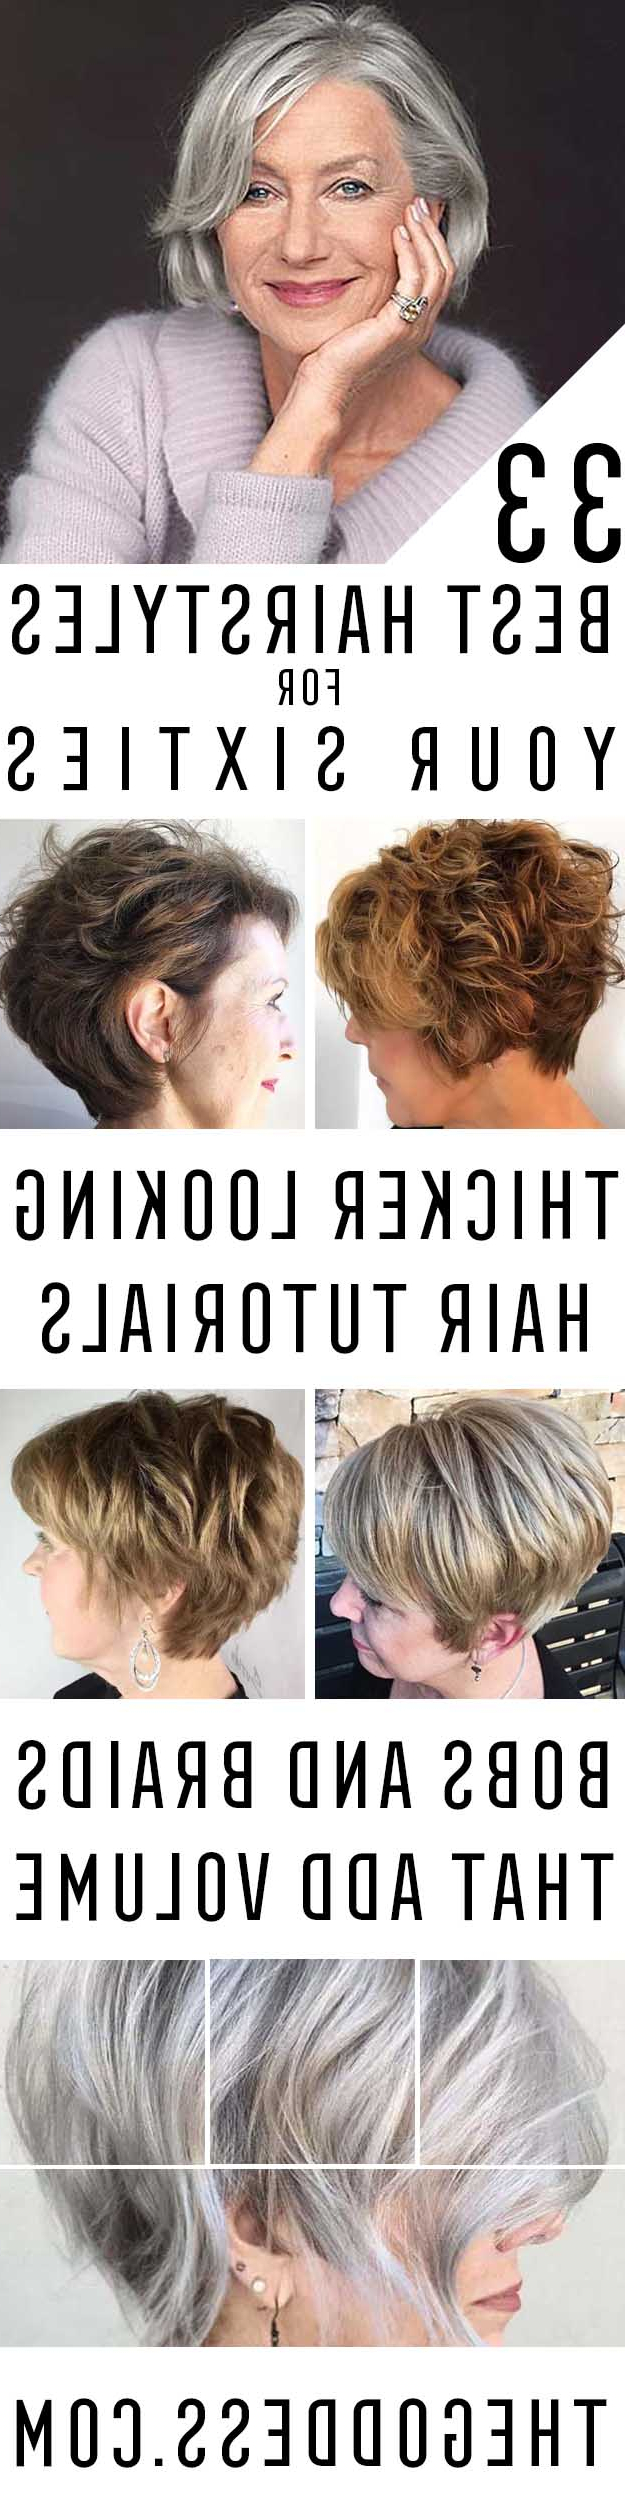 33 Best Hairstyles For Your 60S – The Goddess Intended For Short Hairstyles For 60 Year Olds (View 17 of 25)